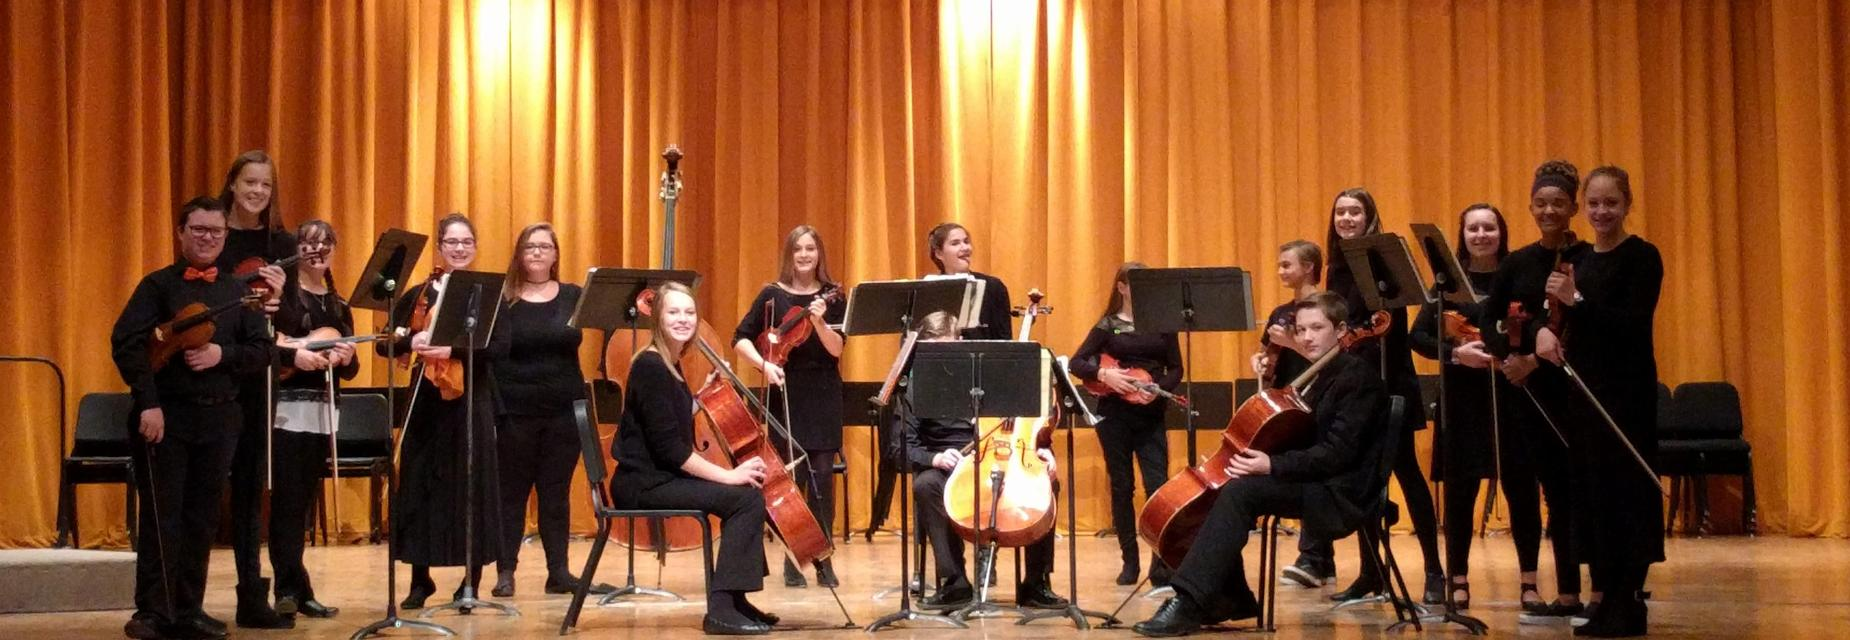 Chamber Orchestra at WSU Festival